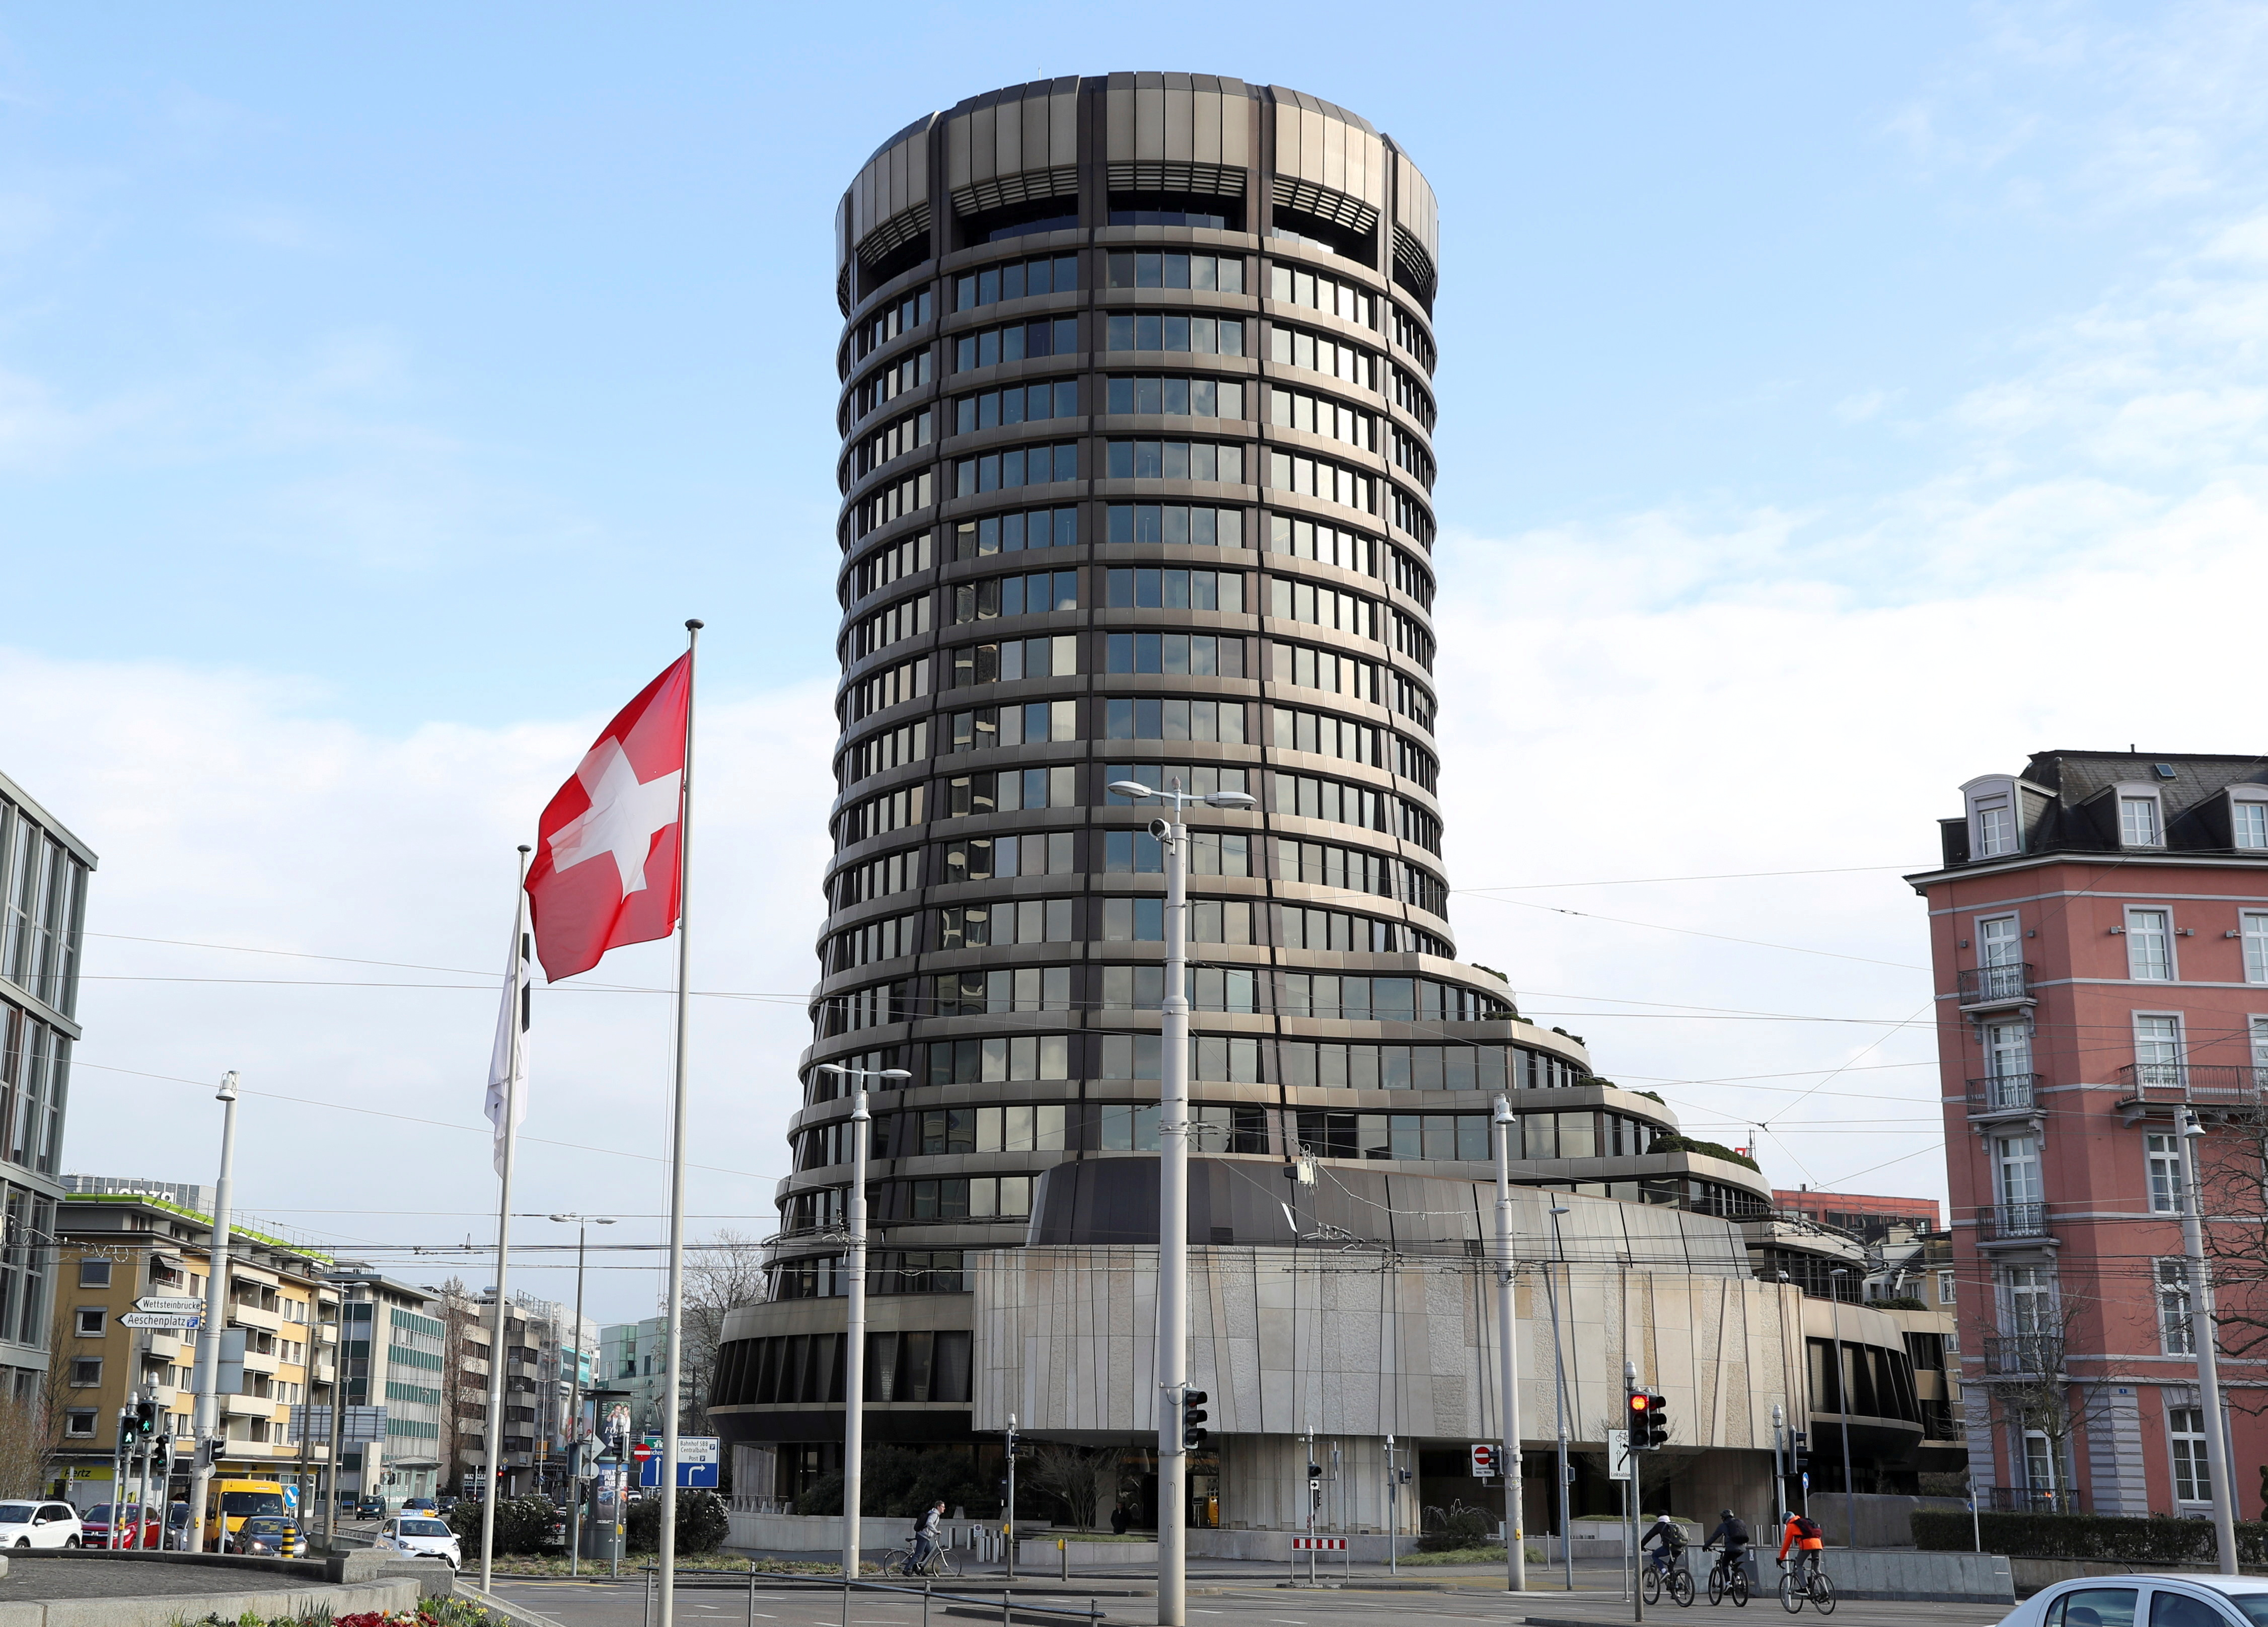 The tower of the headquarters of the Bank for International Settlements (BIS) is seen in Basel, Switzerland March 18, 2021. REUTERS/Arnd Wiegmann